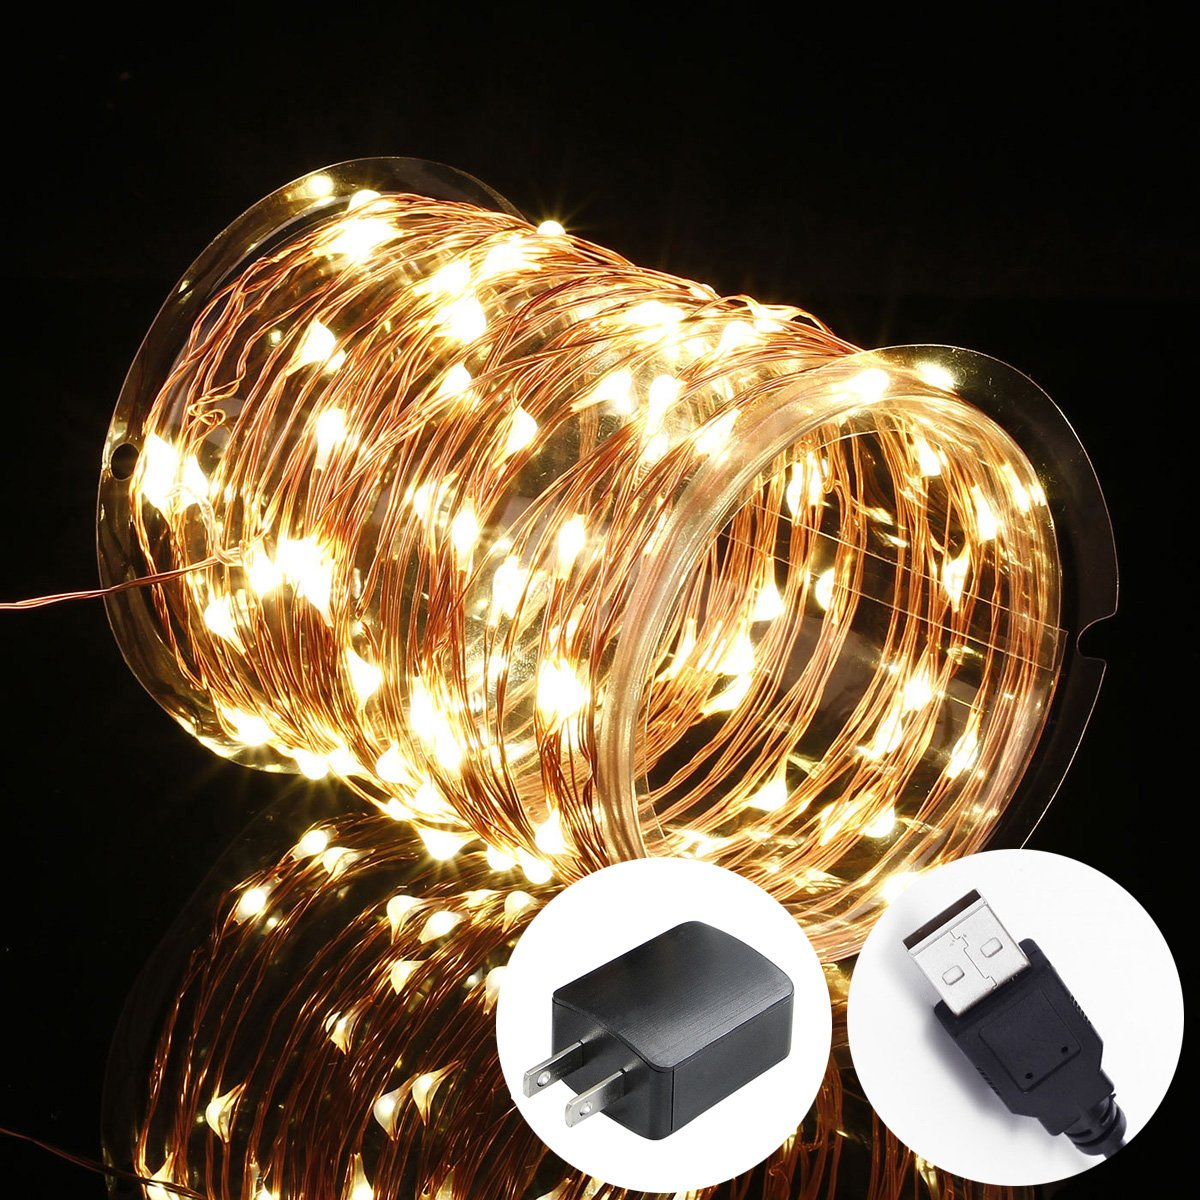 Amazon Innotree Fairy Lights USB Plug In 33Ft 100 LED Warm White Waterproof Starry String For Bedroom Indoor Outdoor Decorative Home